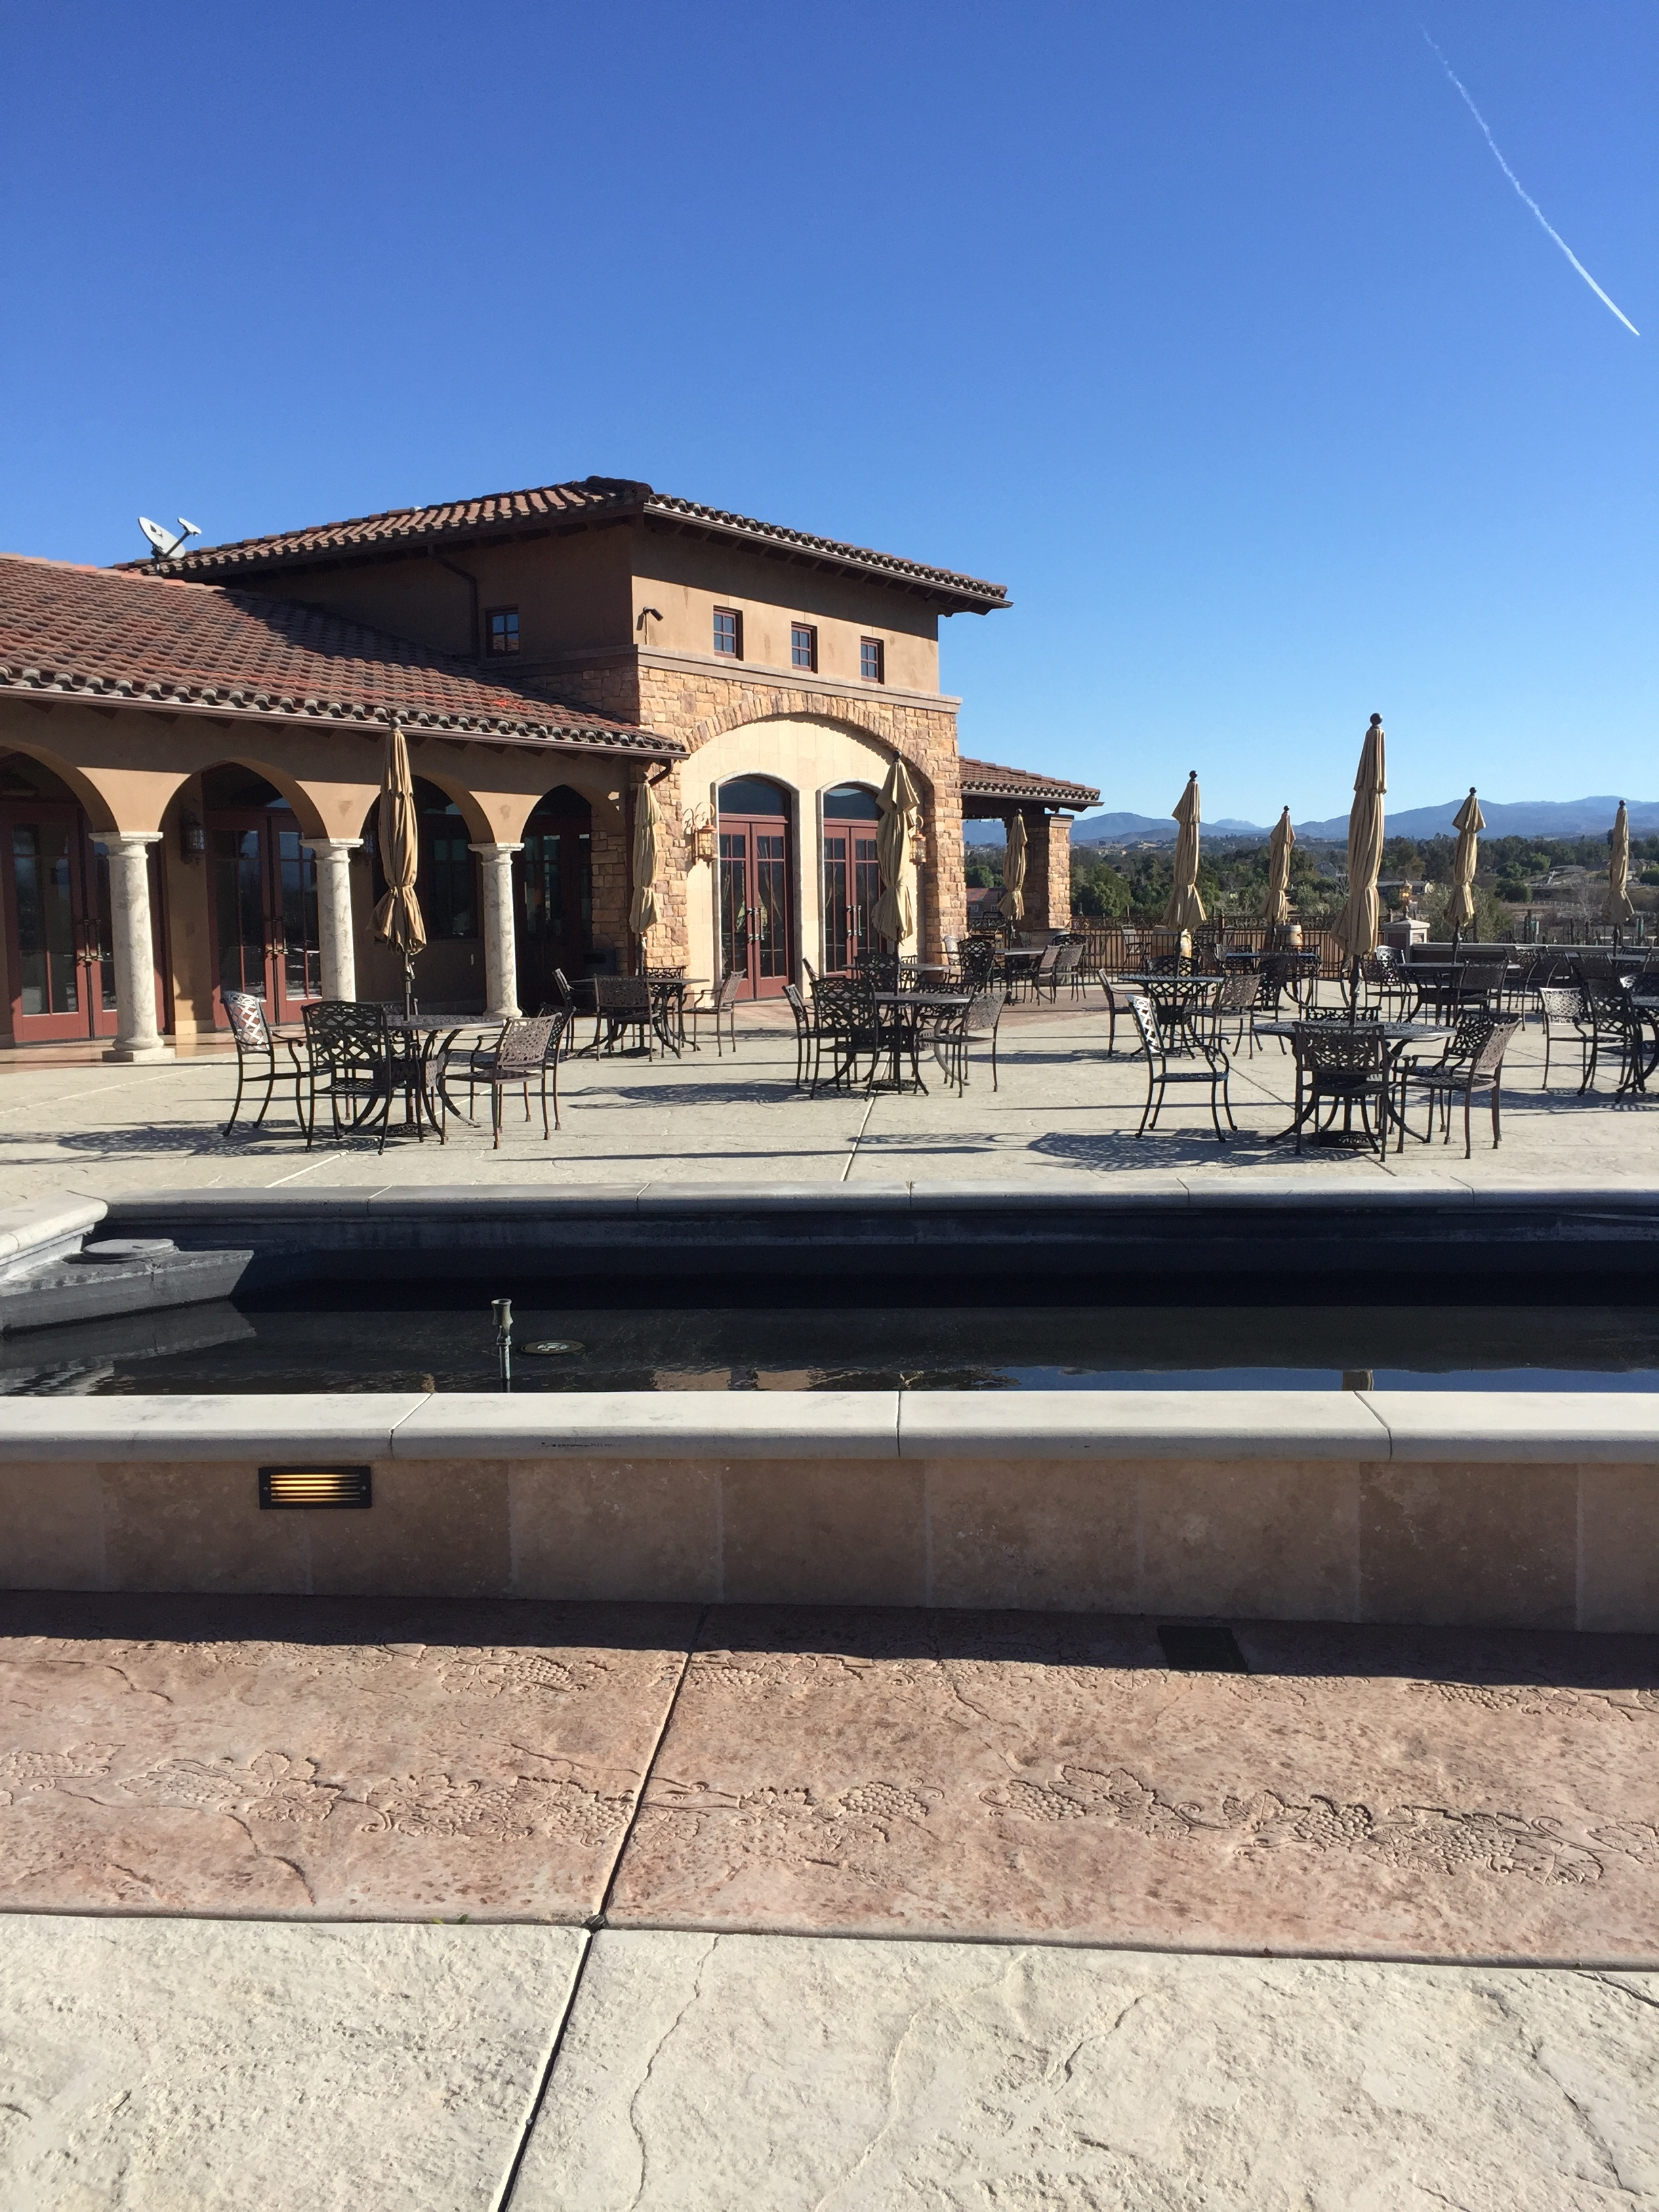 Grab a glass and take in the view of Temecula Wine Country at Monte De Oro.